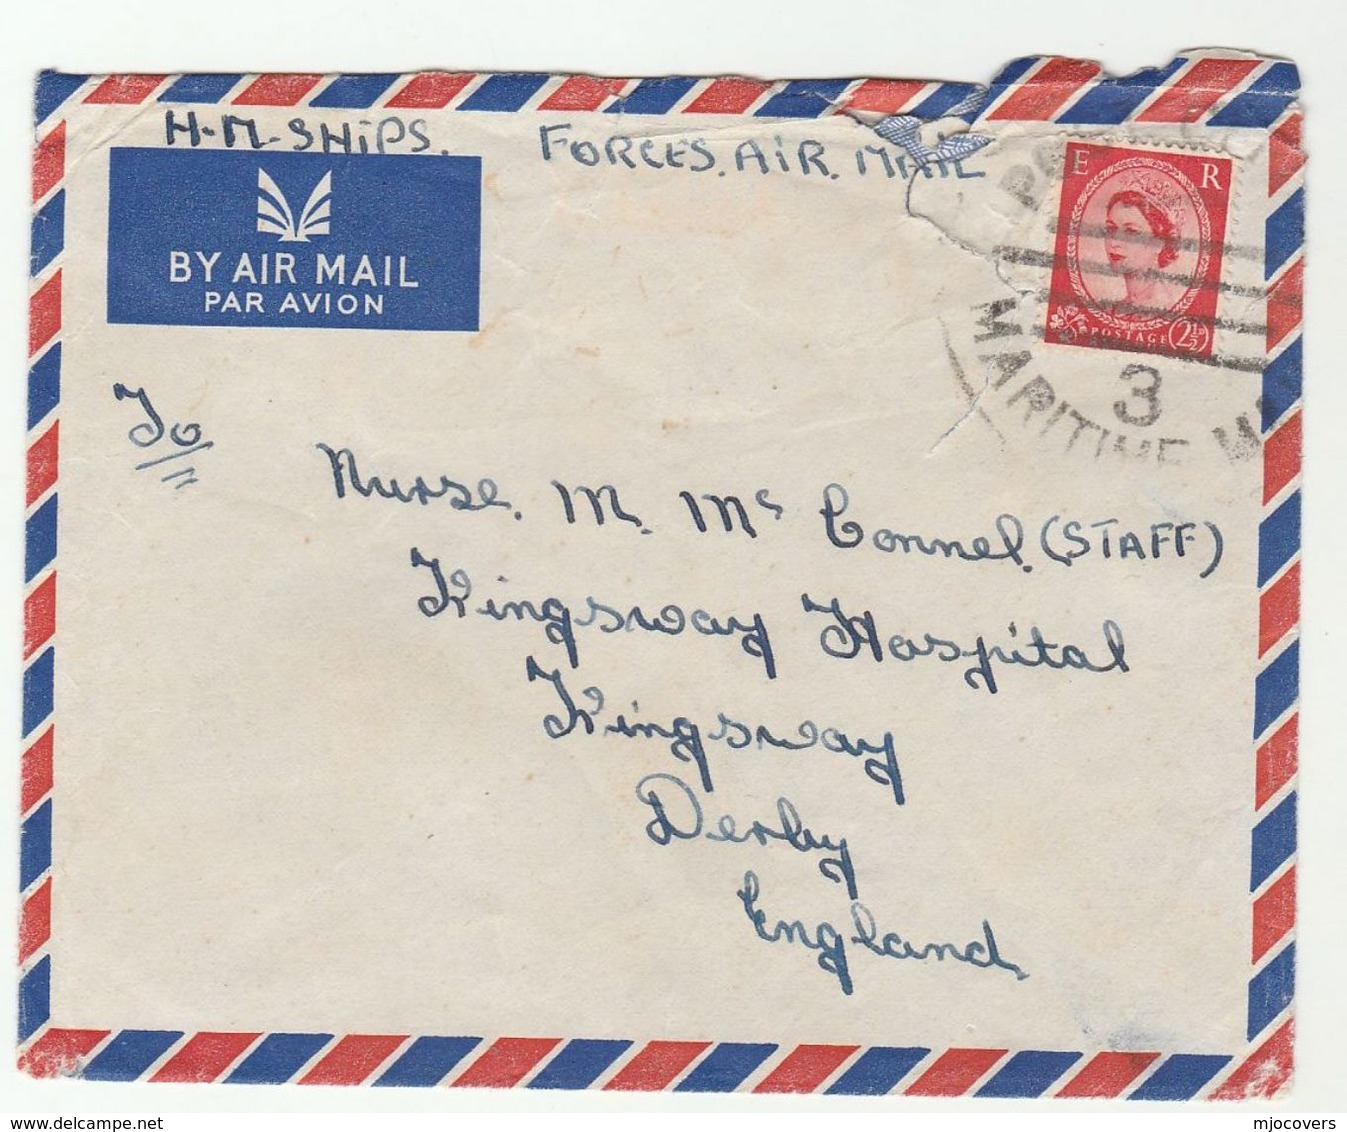 1950s COVER From HMS KENYA Ship  To Kingsway HOSPITAL Derby GB  With MARITIME MAIL Pmk Navy Forces GB Stamps - Ships